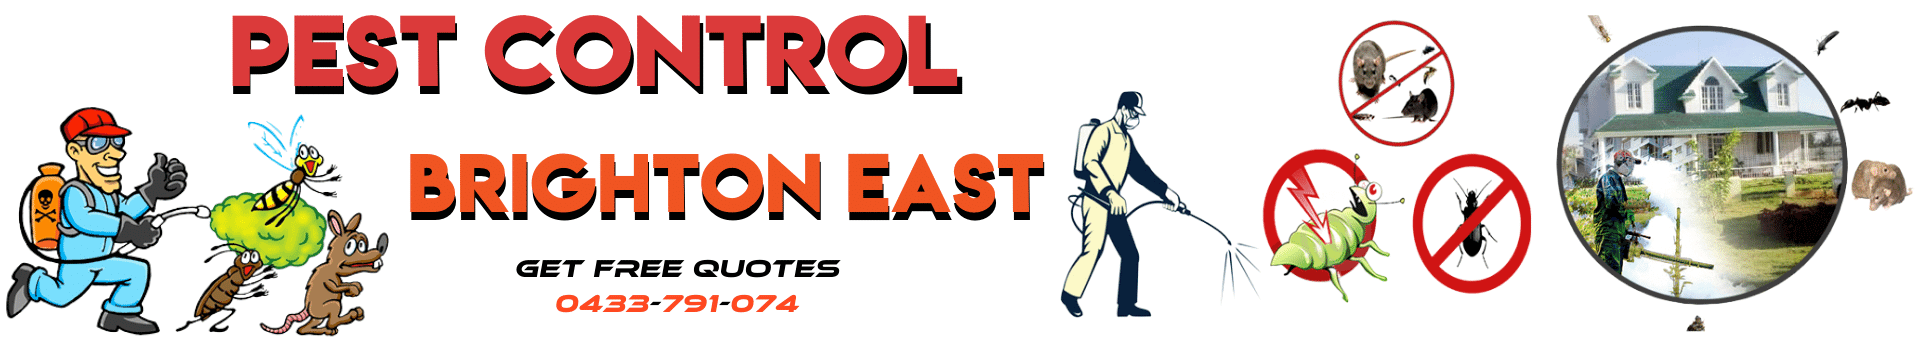 Pest Control Brighton East